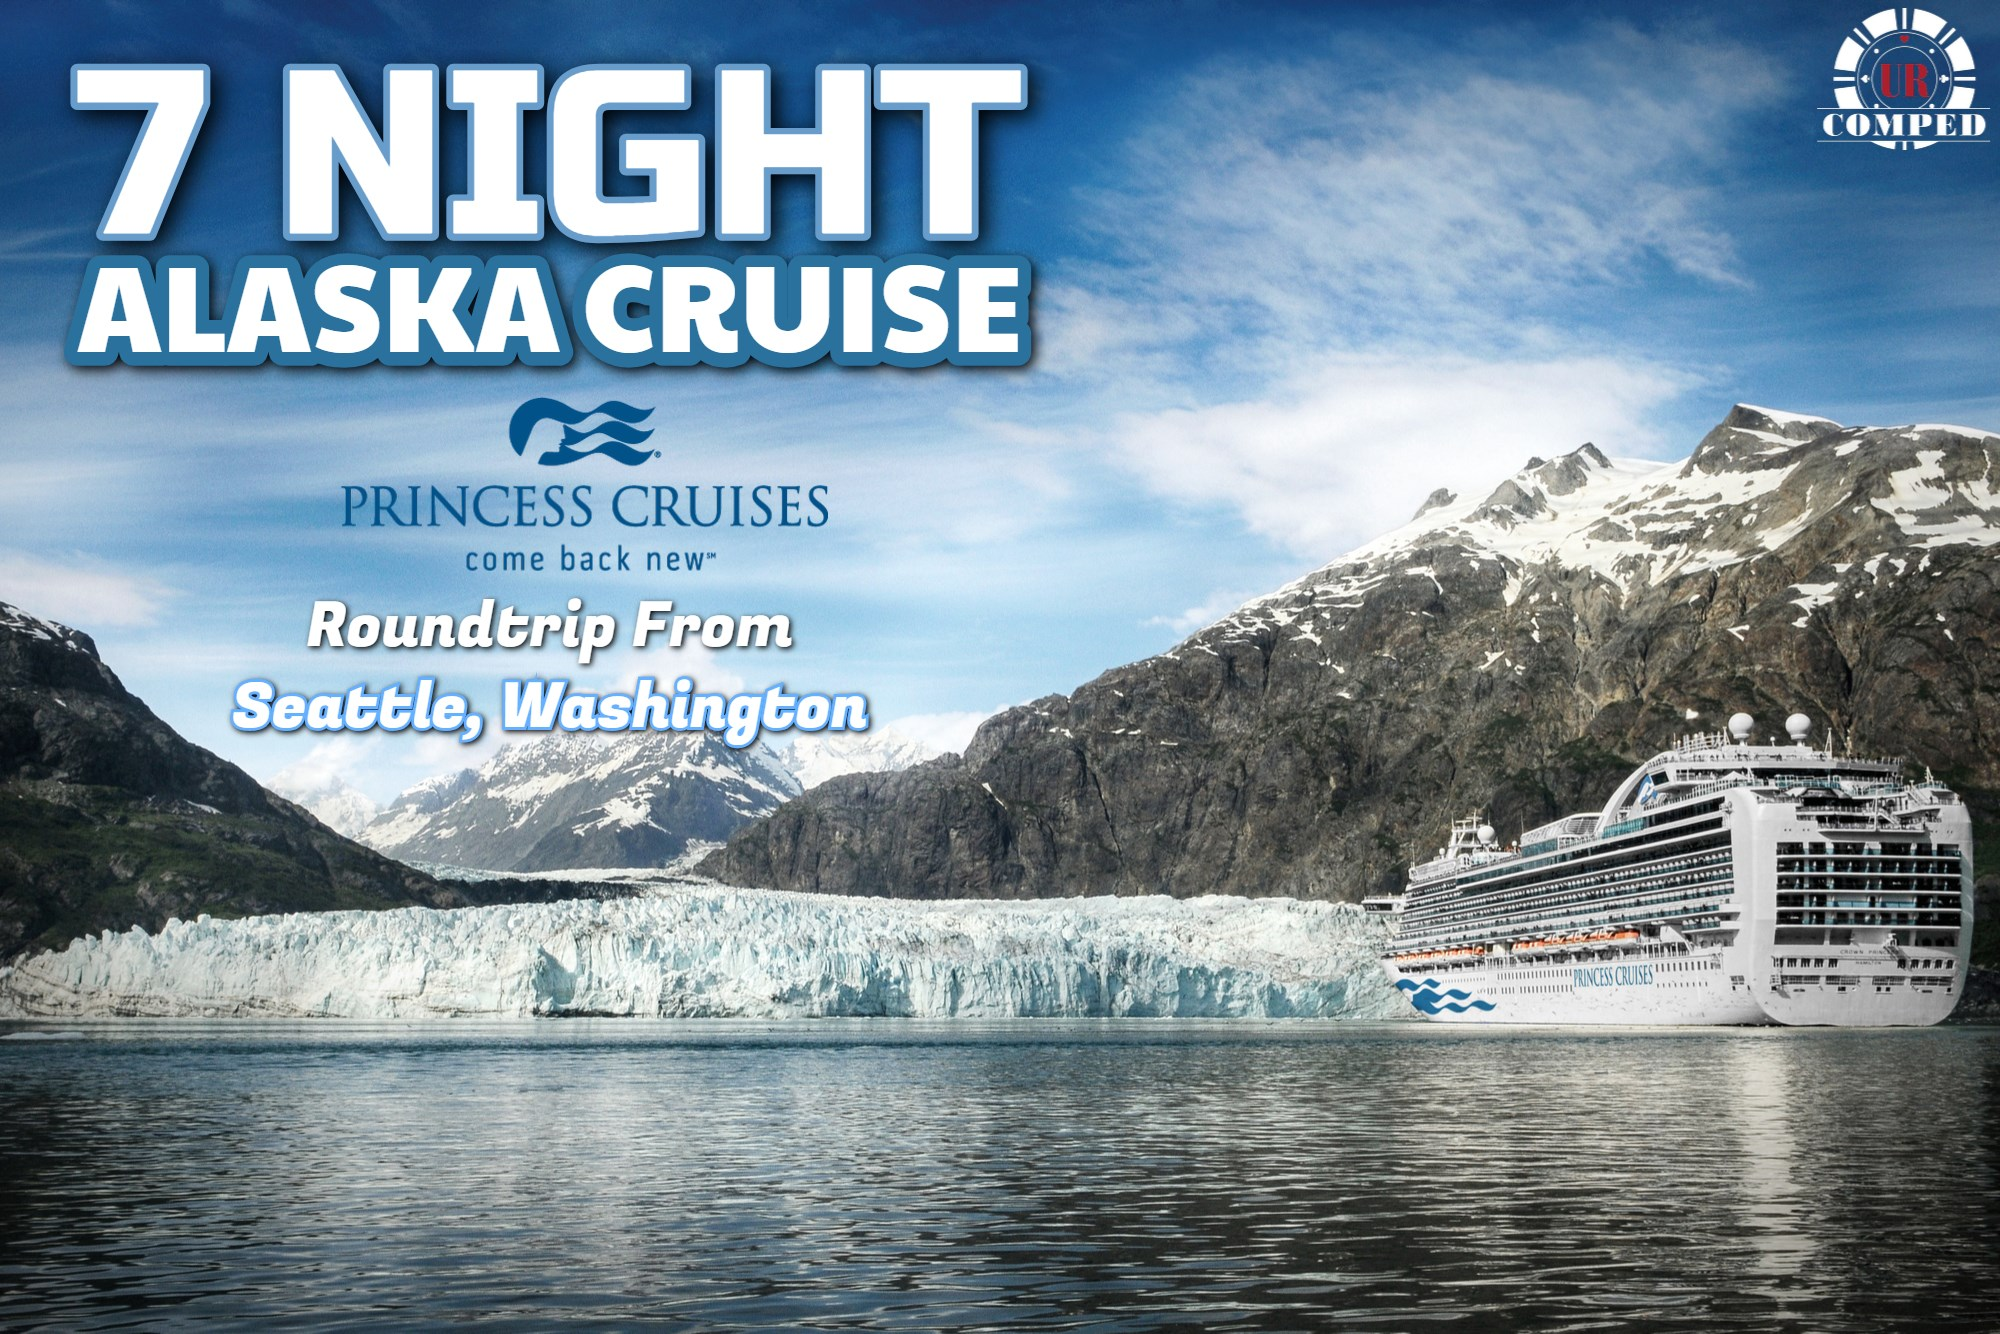 7 Night Alaska Cruises Round-trip From Seattle